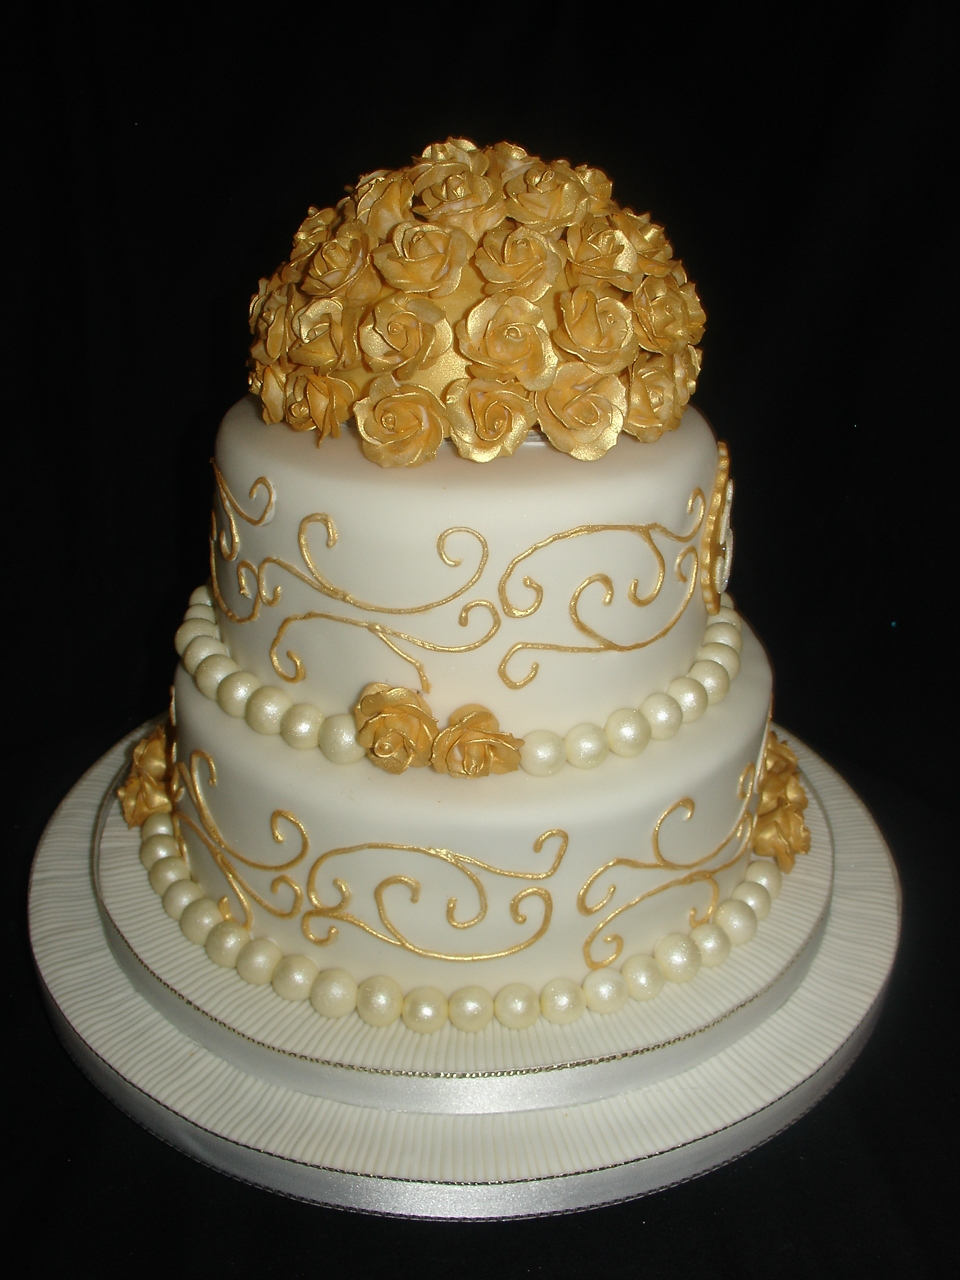 golden 50th wedding anniversary fondant cake. Black Bedroom Furniture Sets. Home Design Ideas